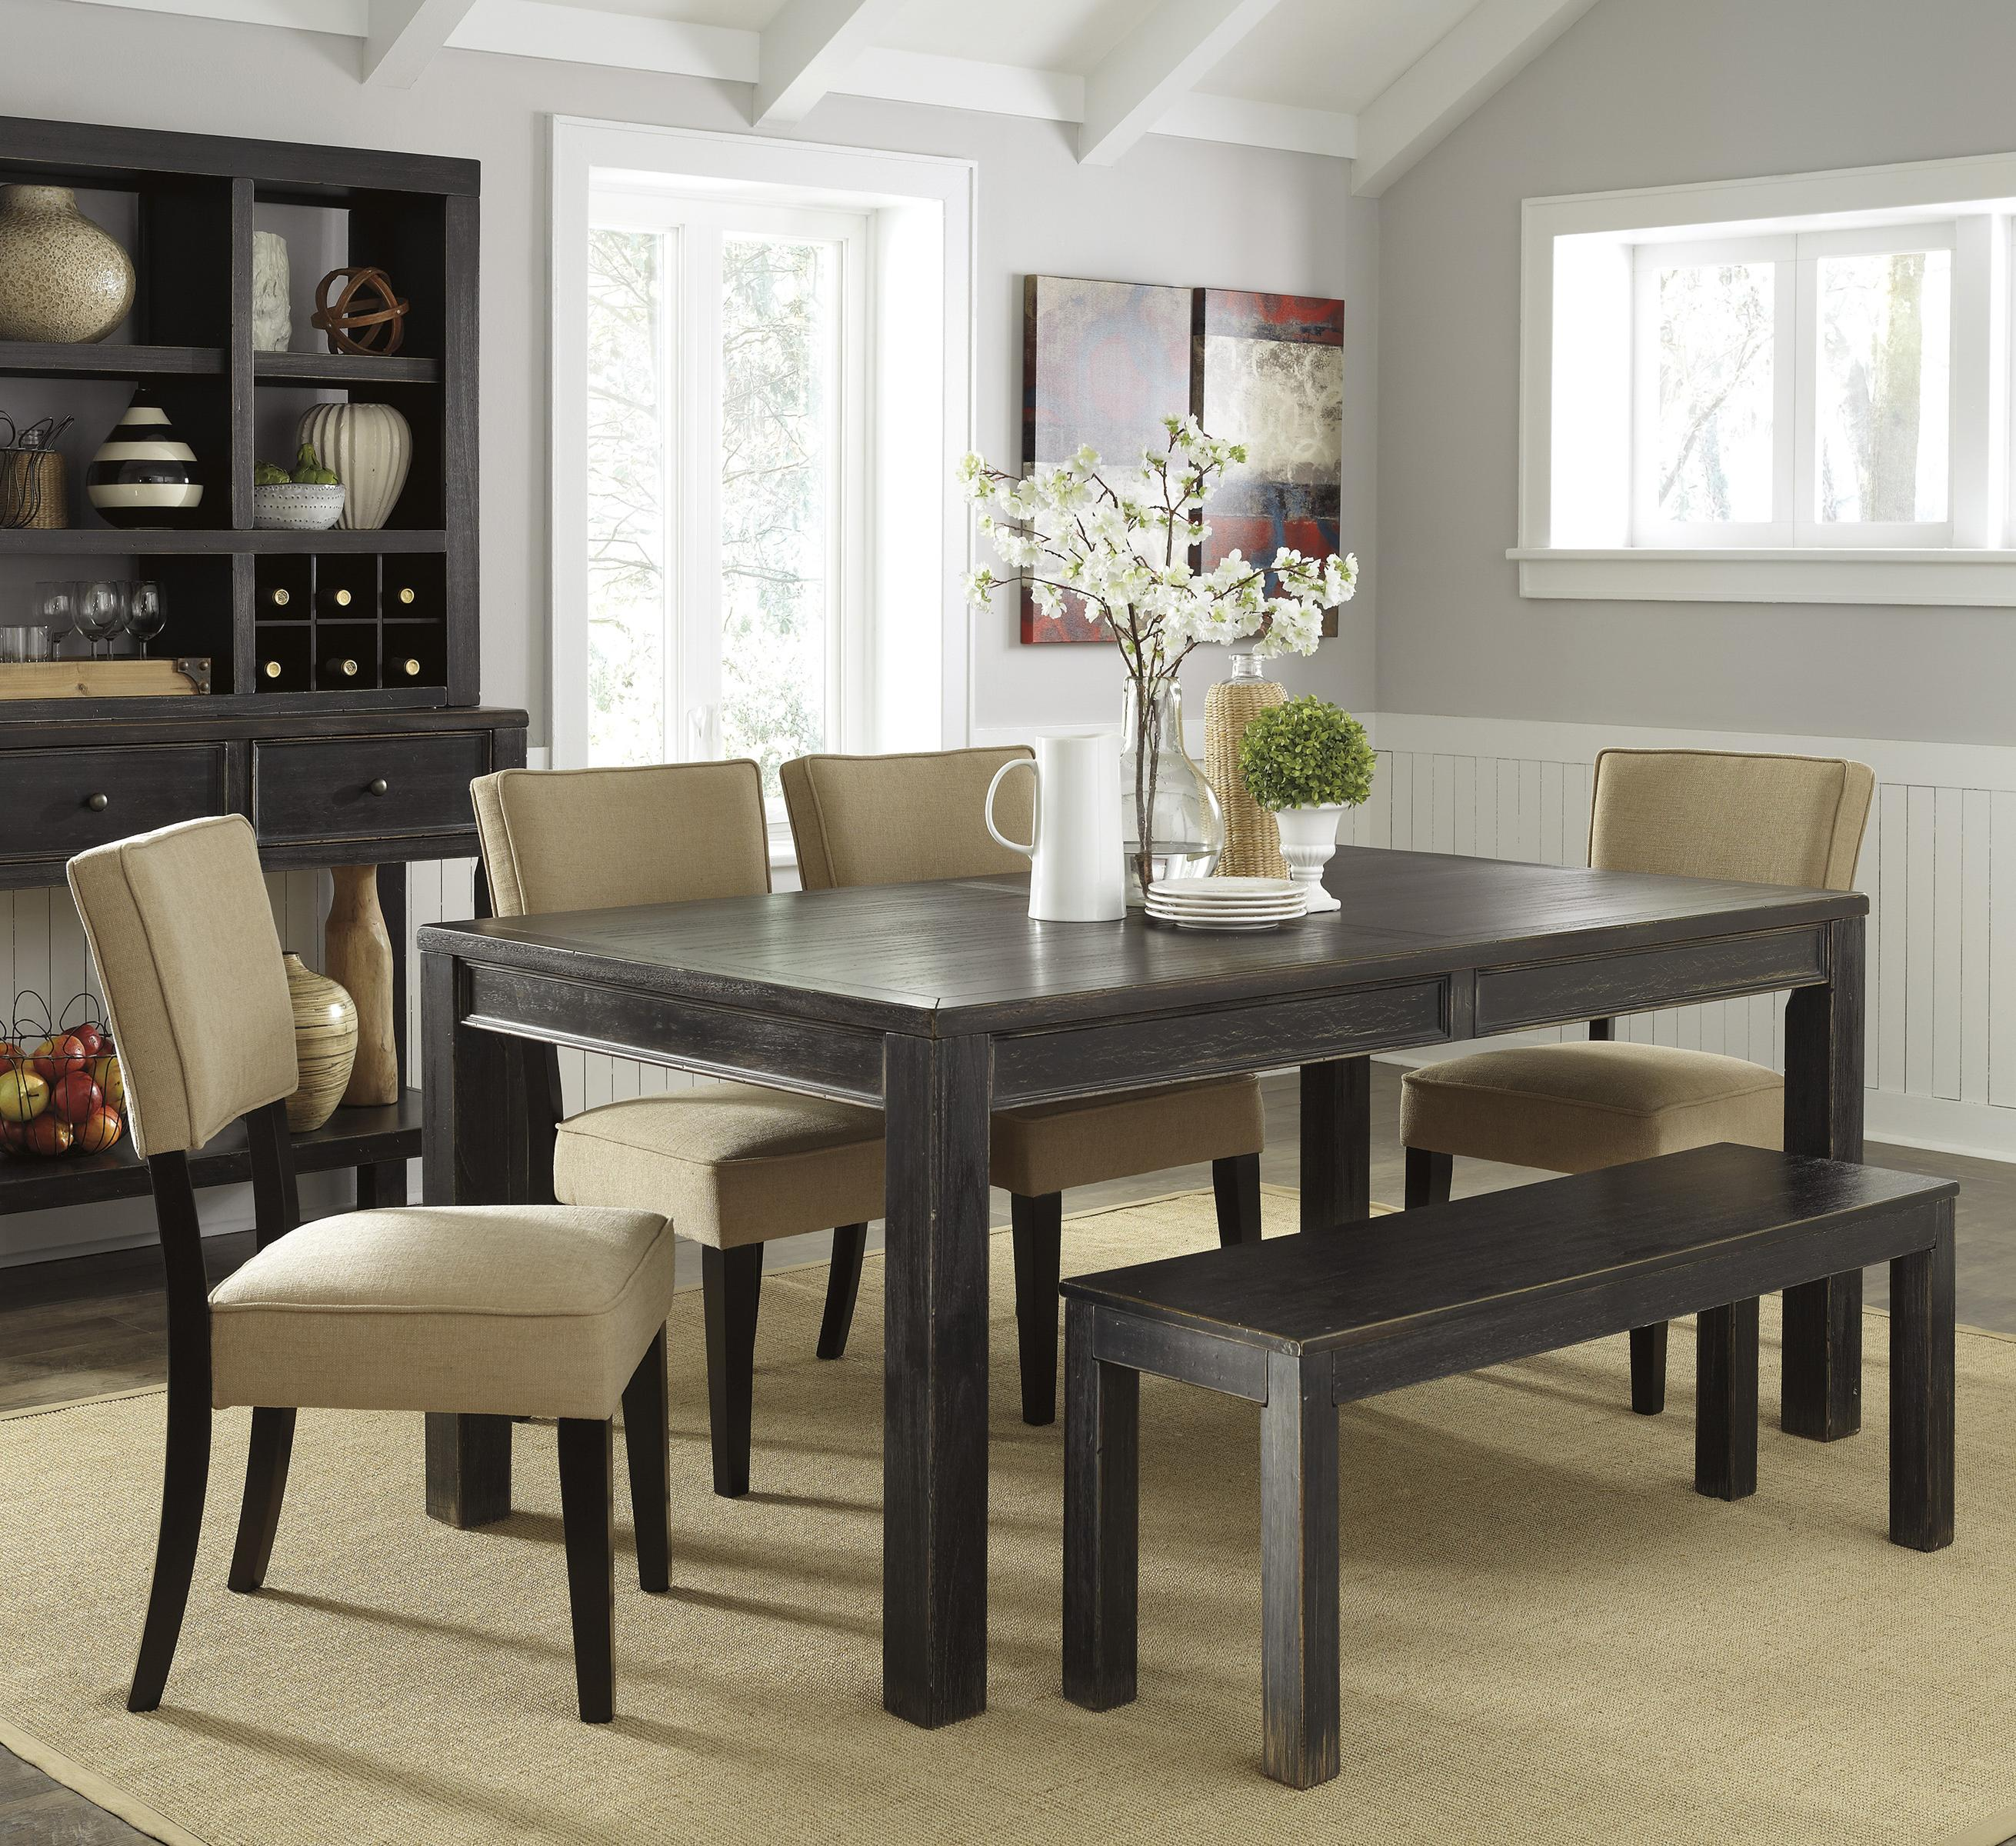 Signature Design by Ashley Gavelston 6-Piece Table Set with Bench - Item Number: D532-25+4x01+09